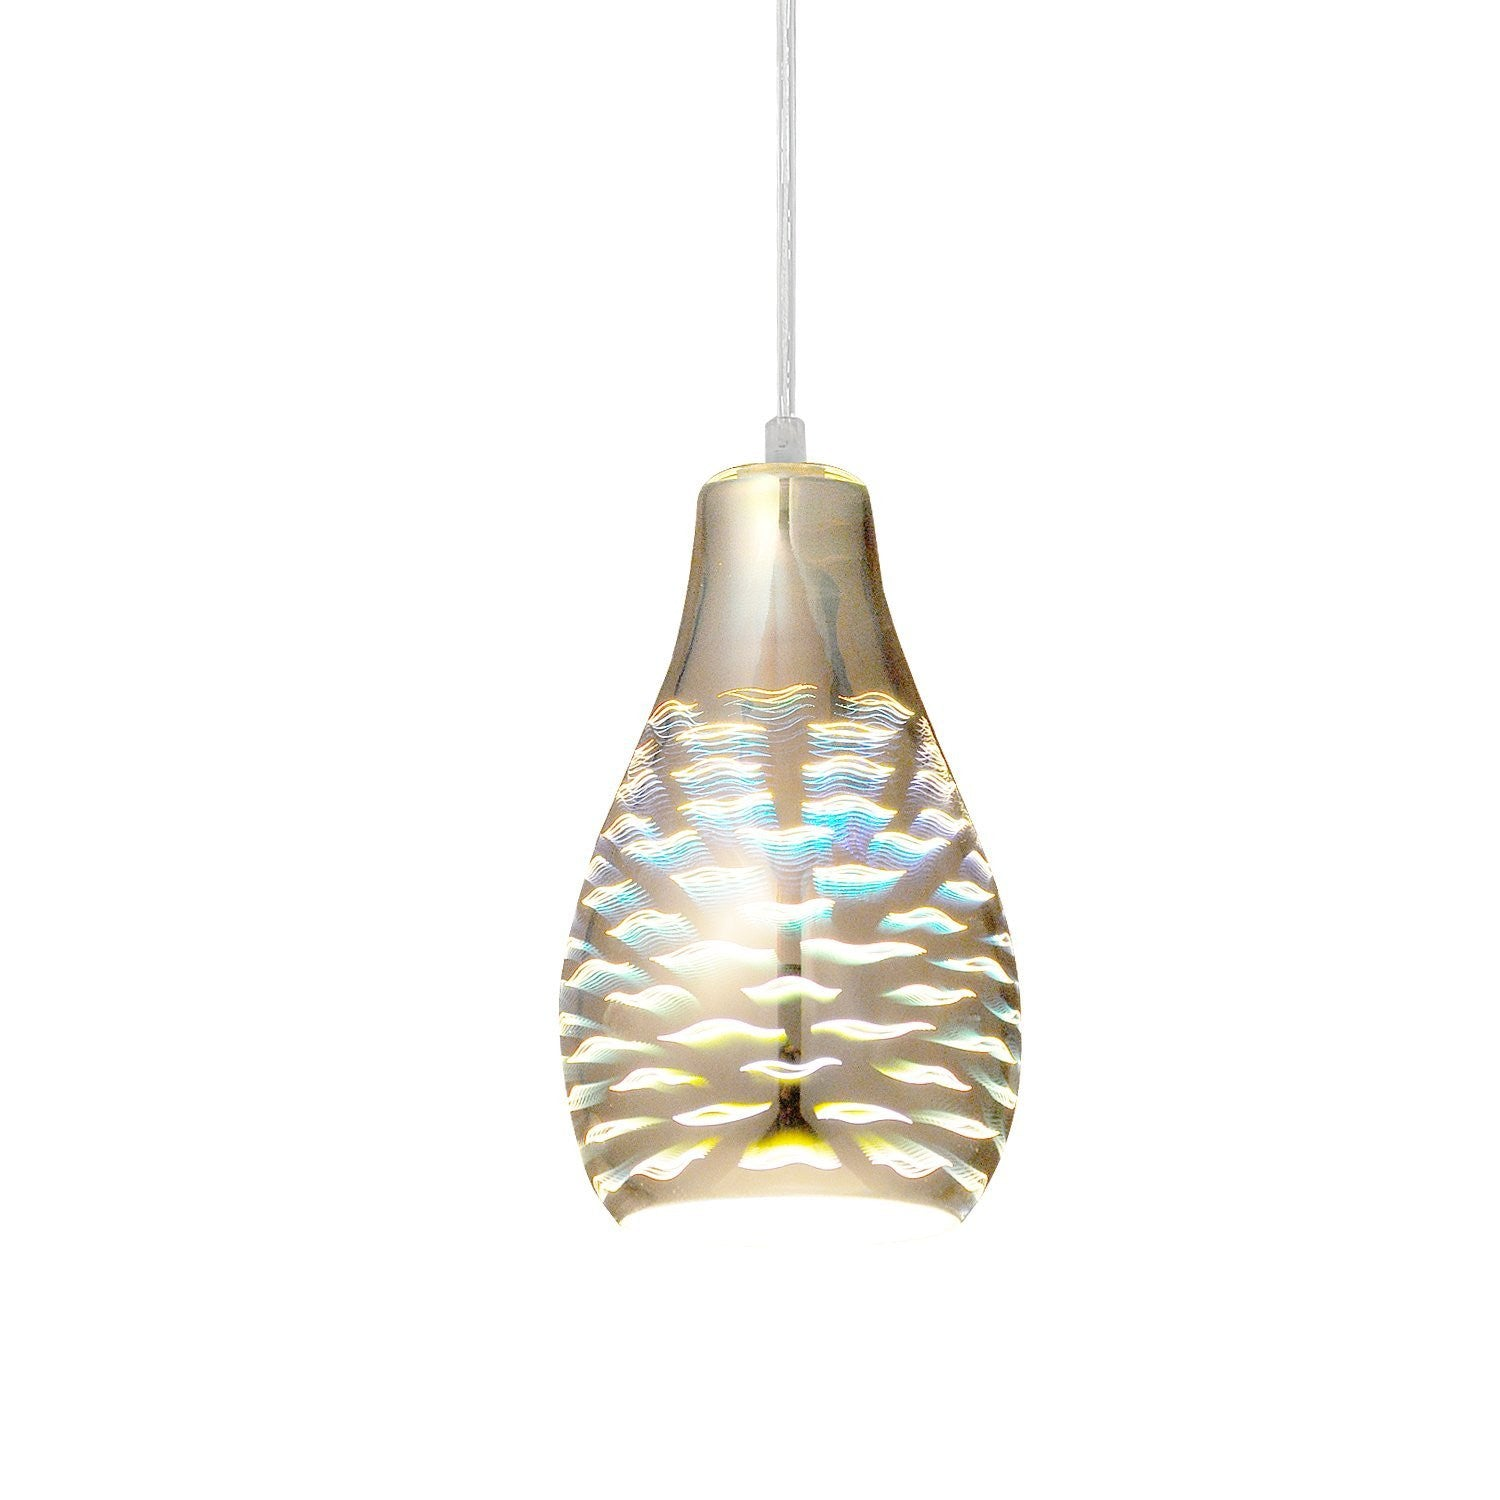 Unitary Brand Modern Silvery 3D Glass Shade Mini Pendant Light Max 40W With 1 Light Socket Plating Finish